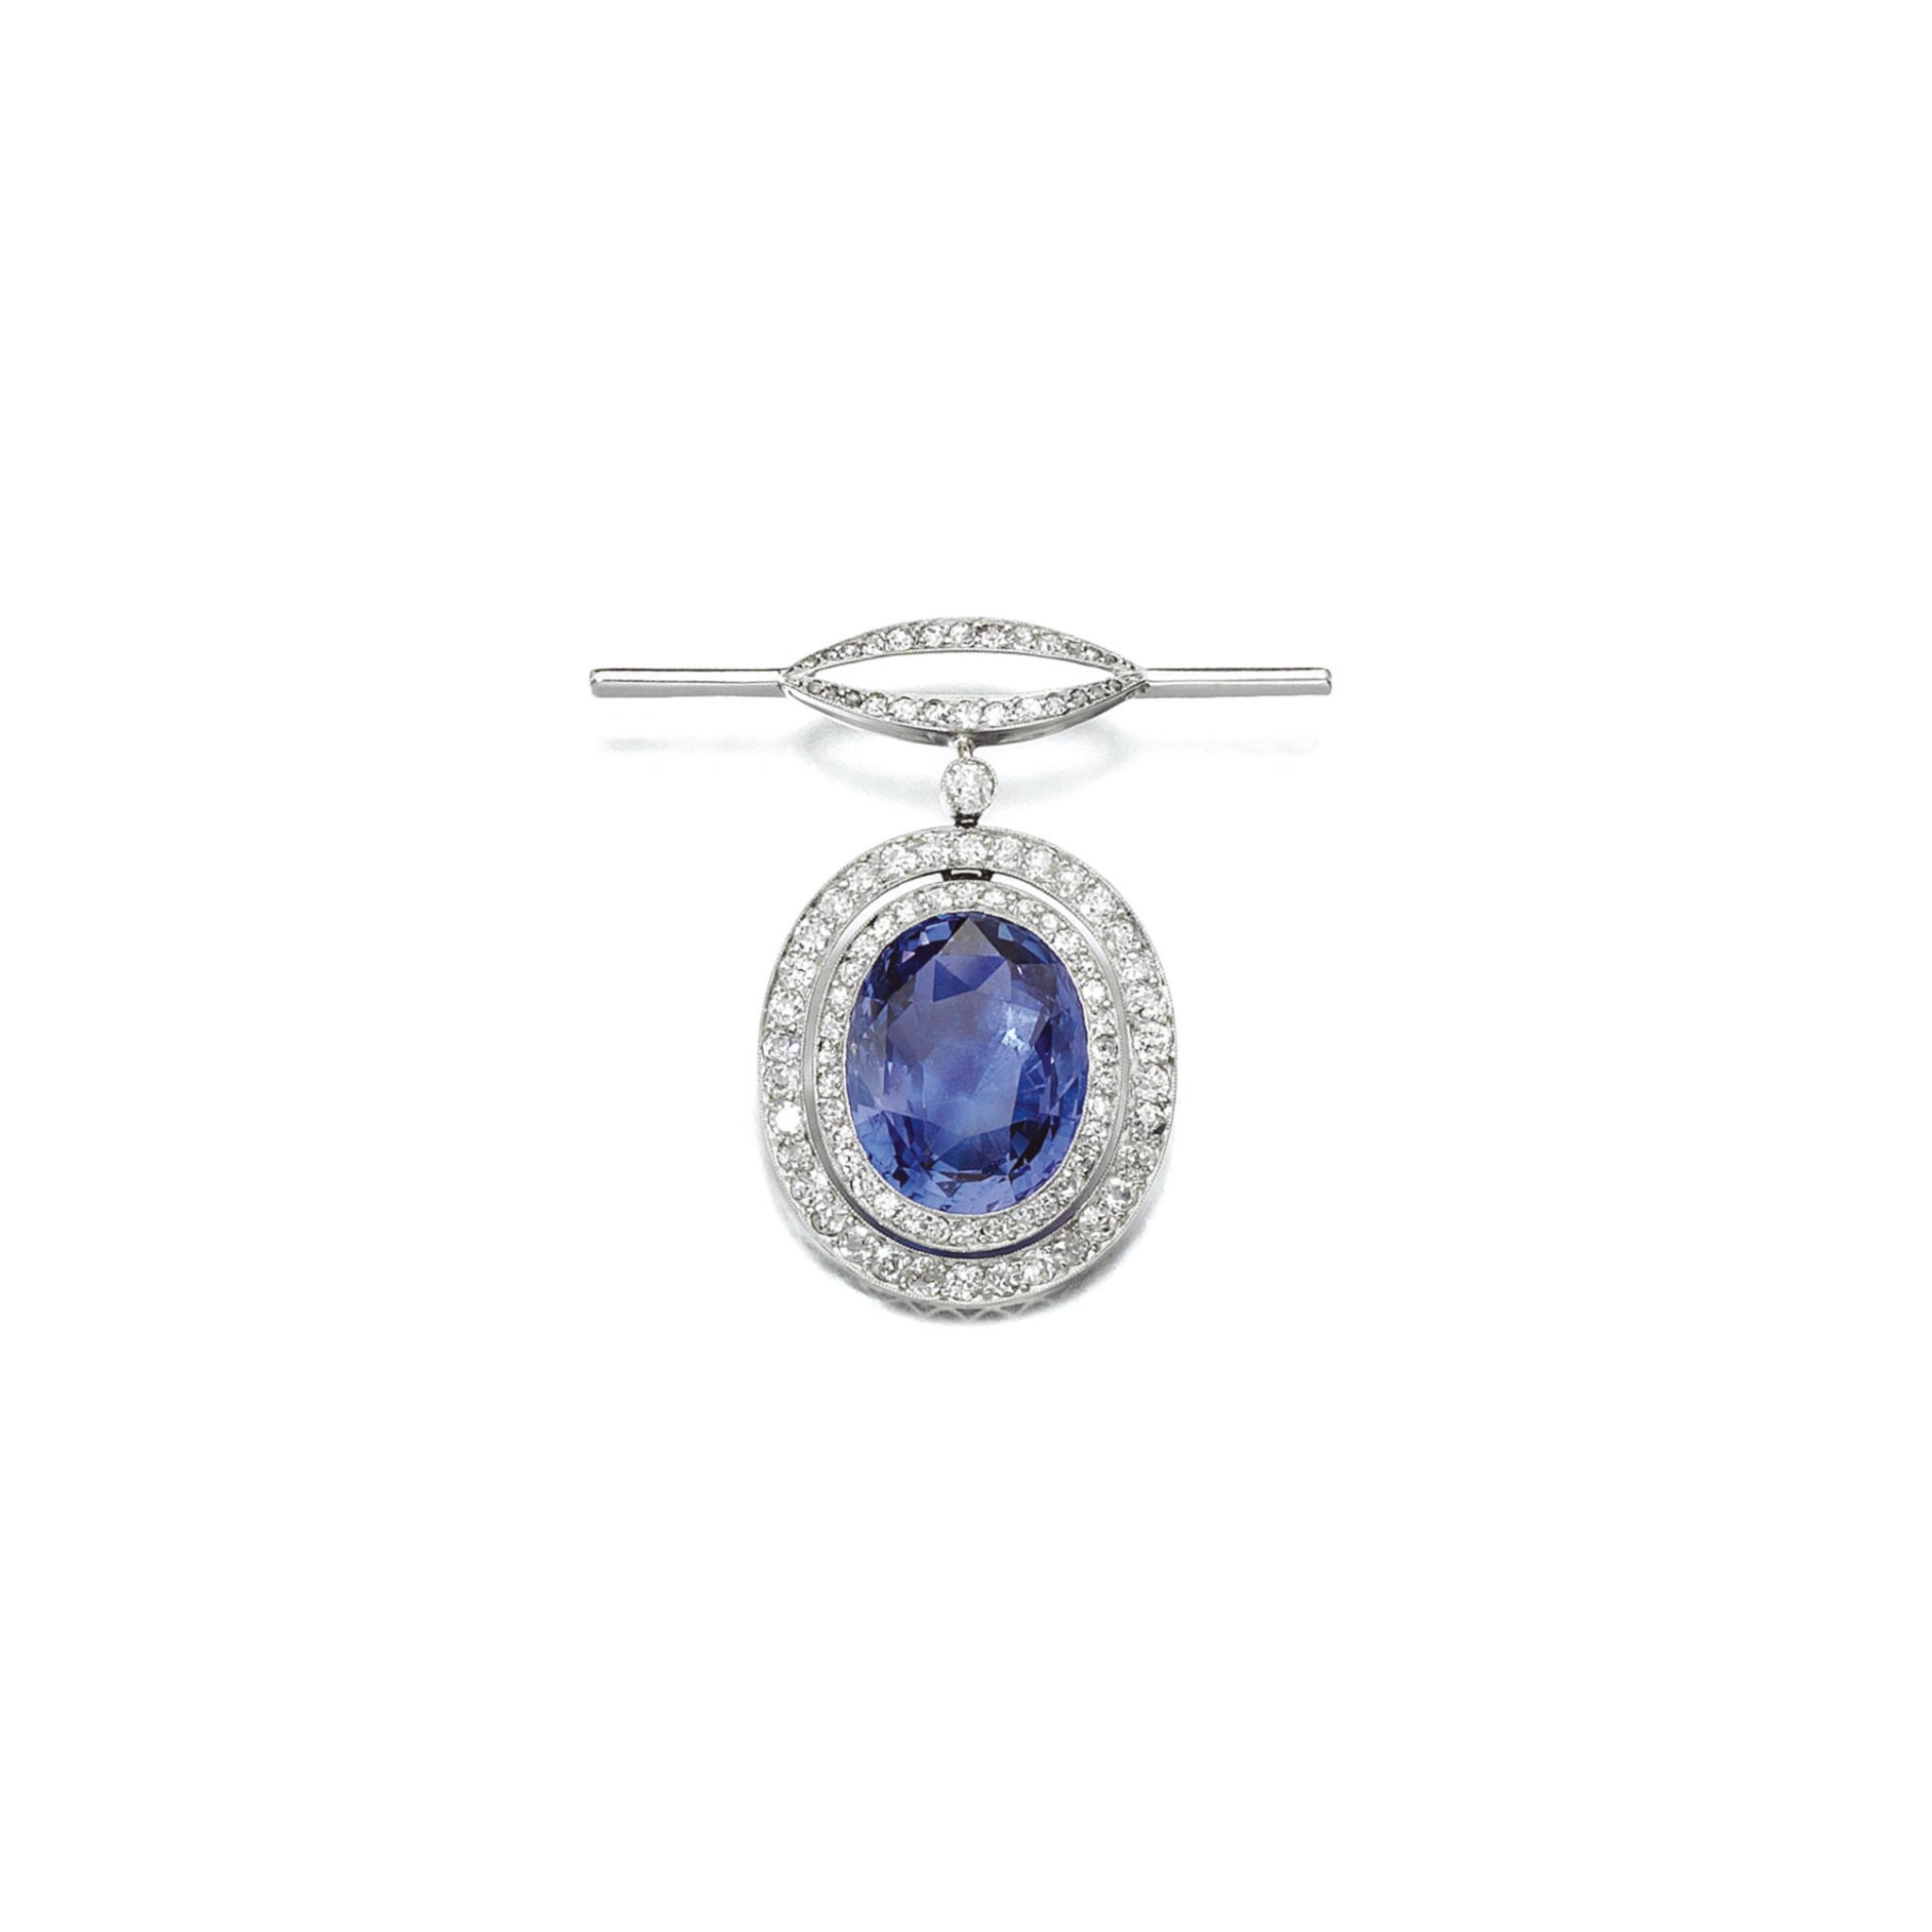 View 1 of Lot 3. COLOUR CHANGE SAPPHIRE AND DIAMOND BROOCH, EARLY 20TH CENTURY COMPOSITE.